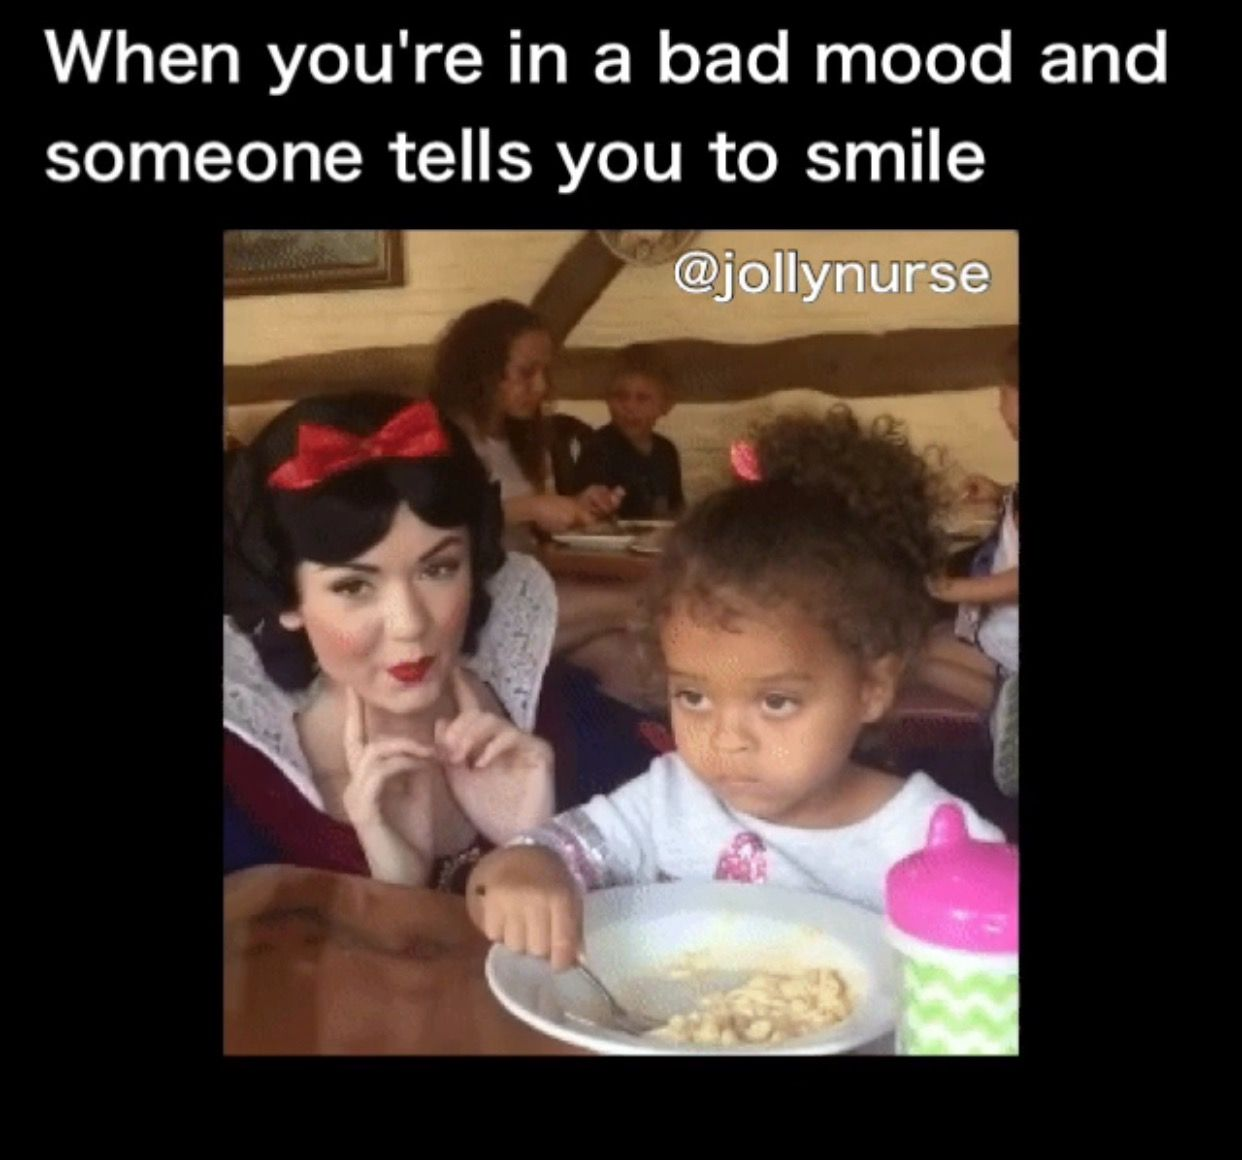 We All Have Bad Days Sometimes Bad Day Humor Bad Day Meme Just For Laughs